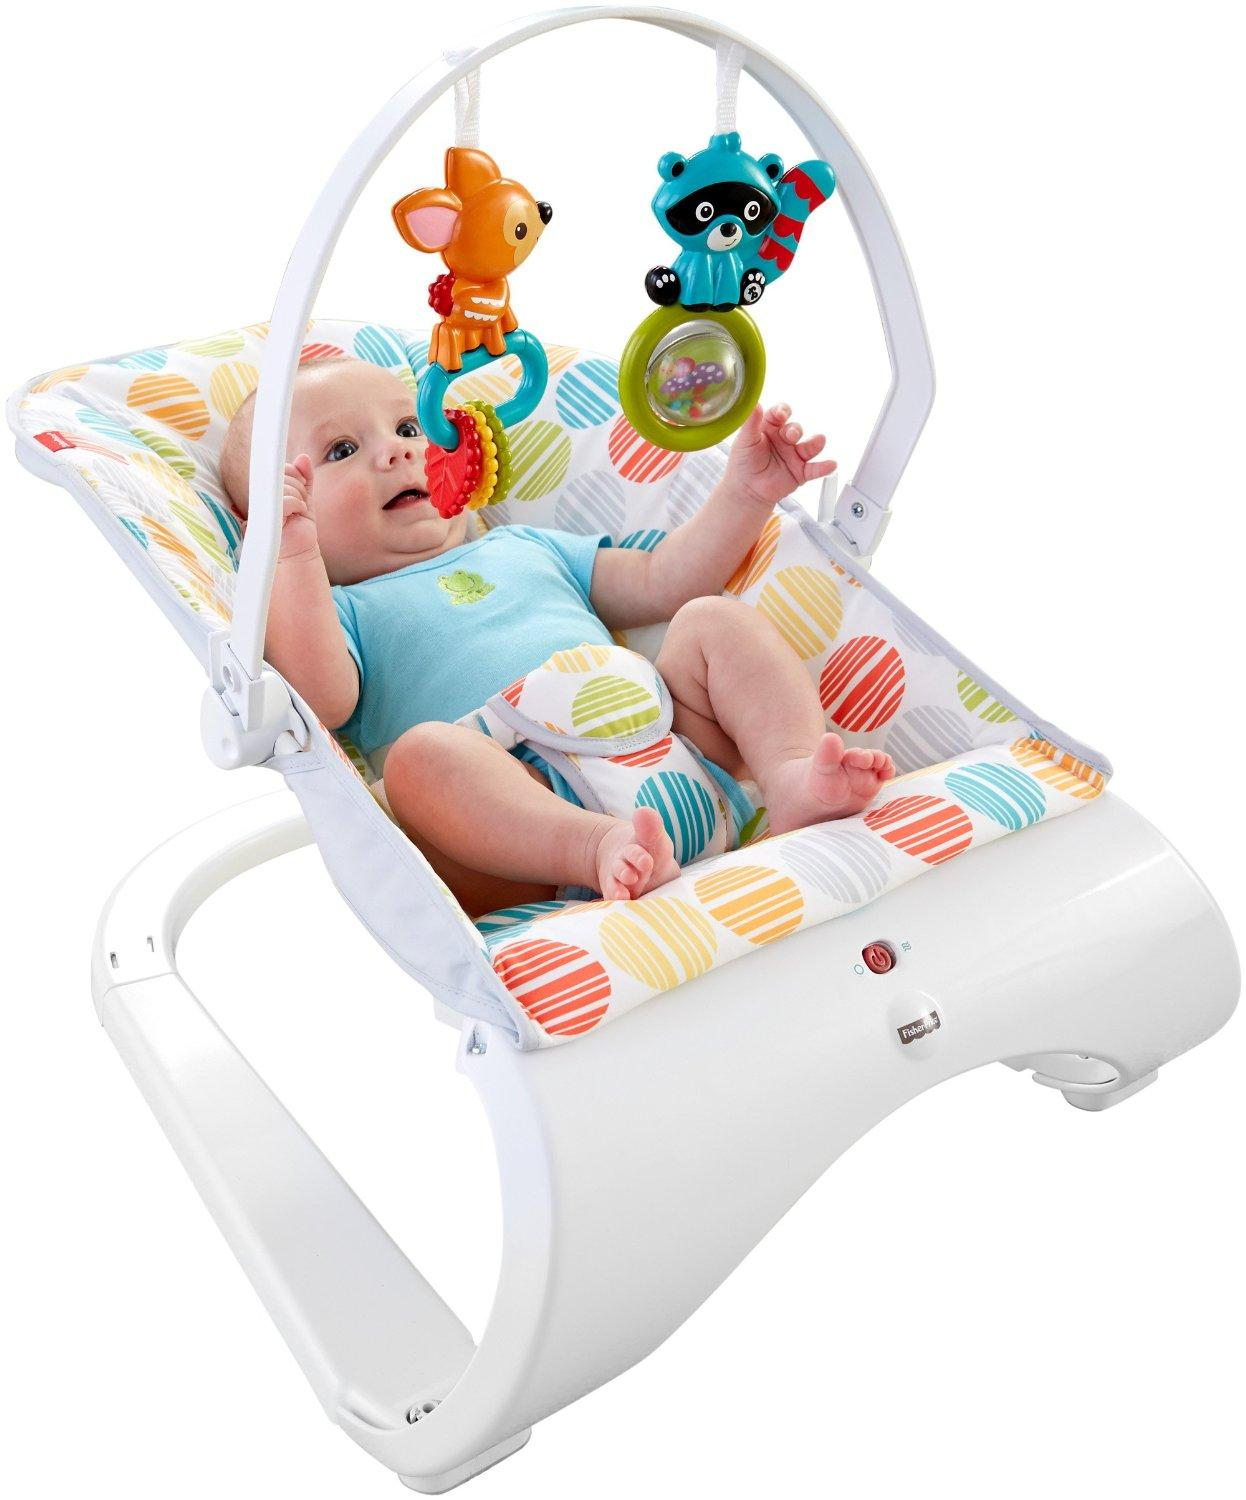 baby chair that vibrates office quotation comfy seat overhead toys fisher price comfort curve